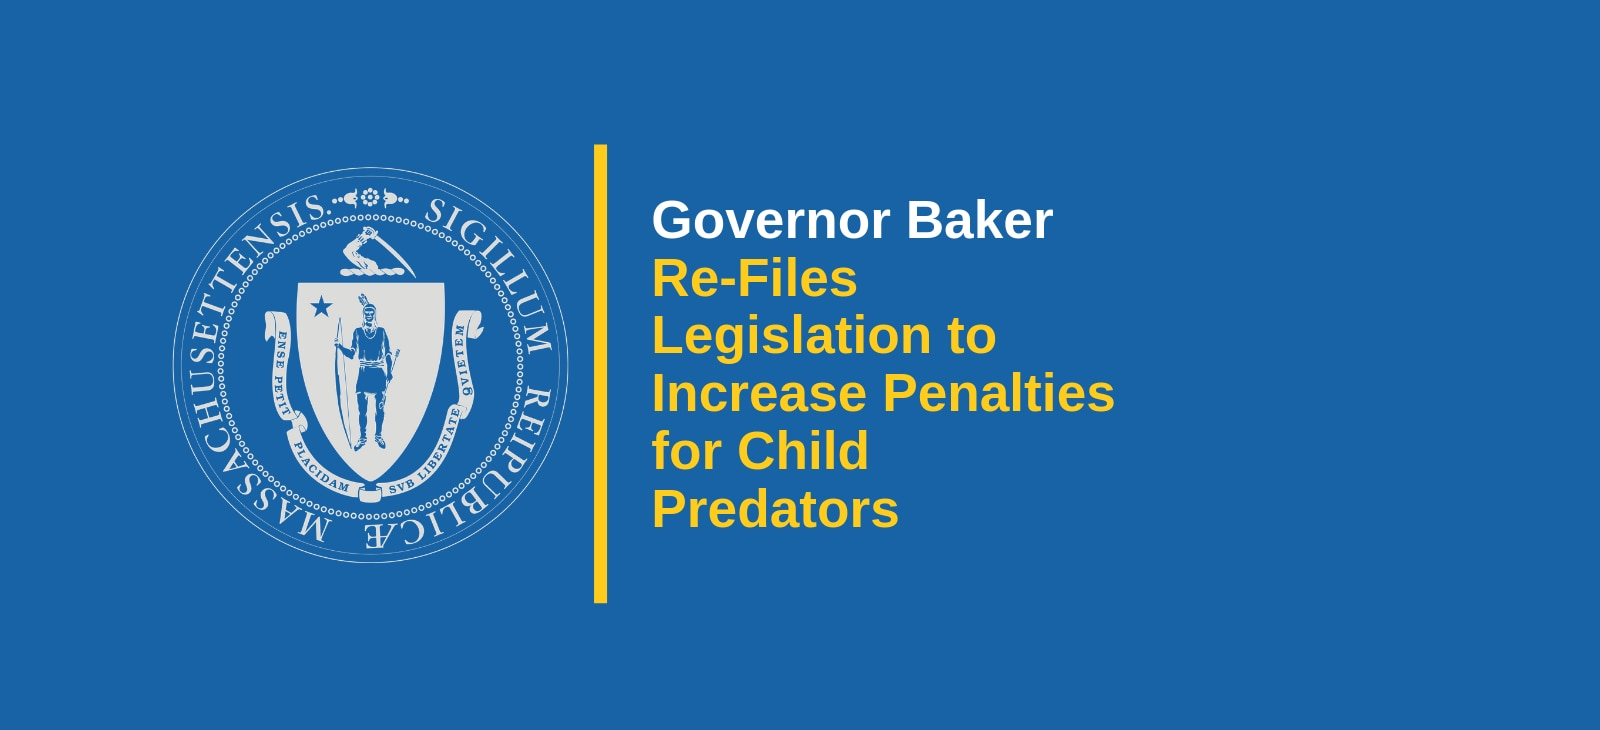 Governor Baker Re-Files Legislation to Increase Penalties for Child Predators